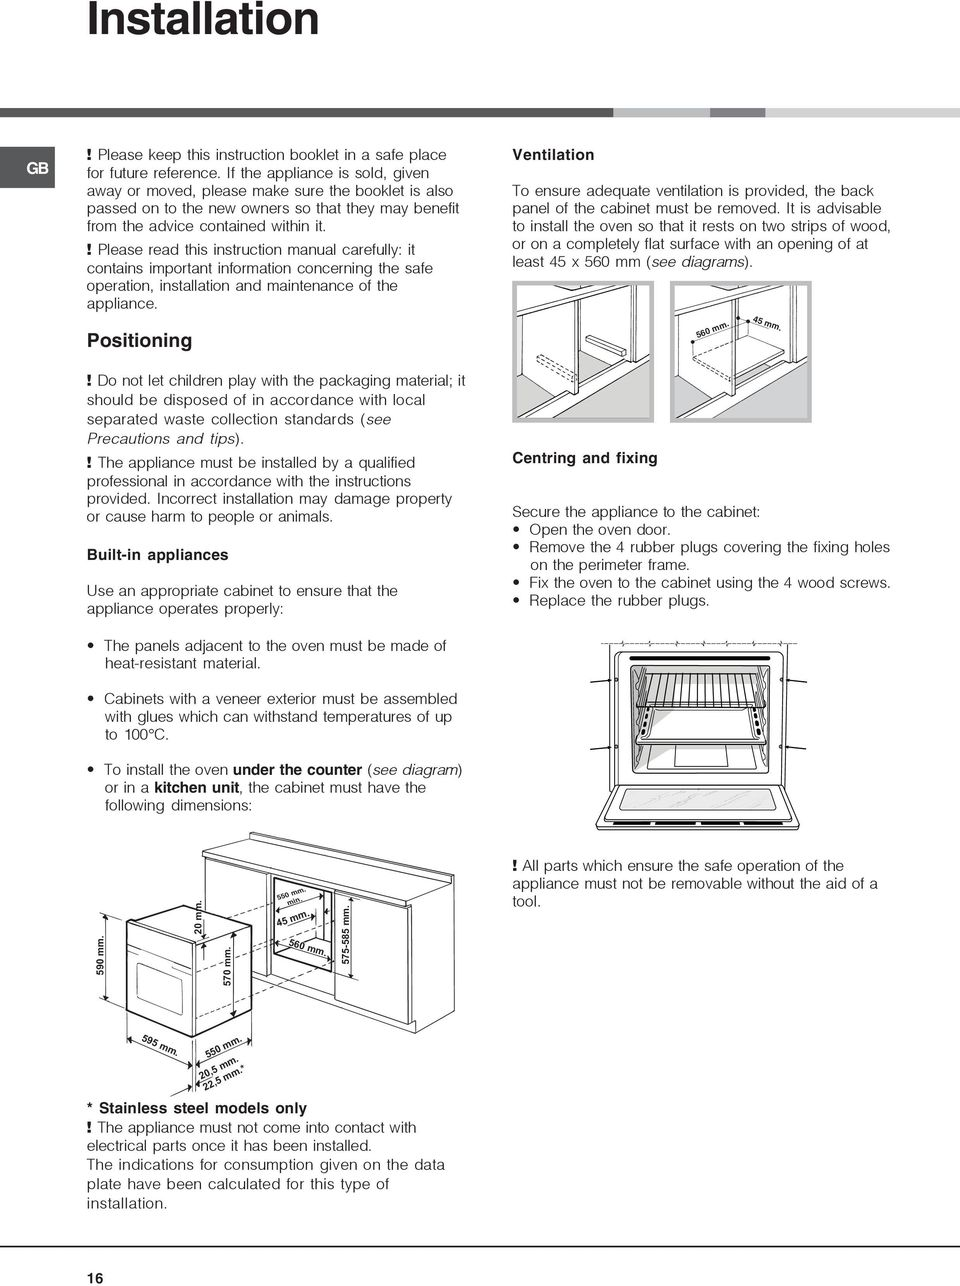 ! Please read this instruction manual carefully: it contains important information concerning the safe operation, installation and maintenance of the appliance. Positioning!